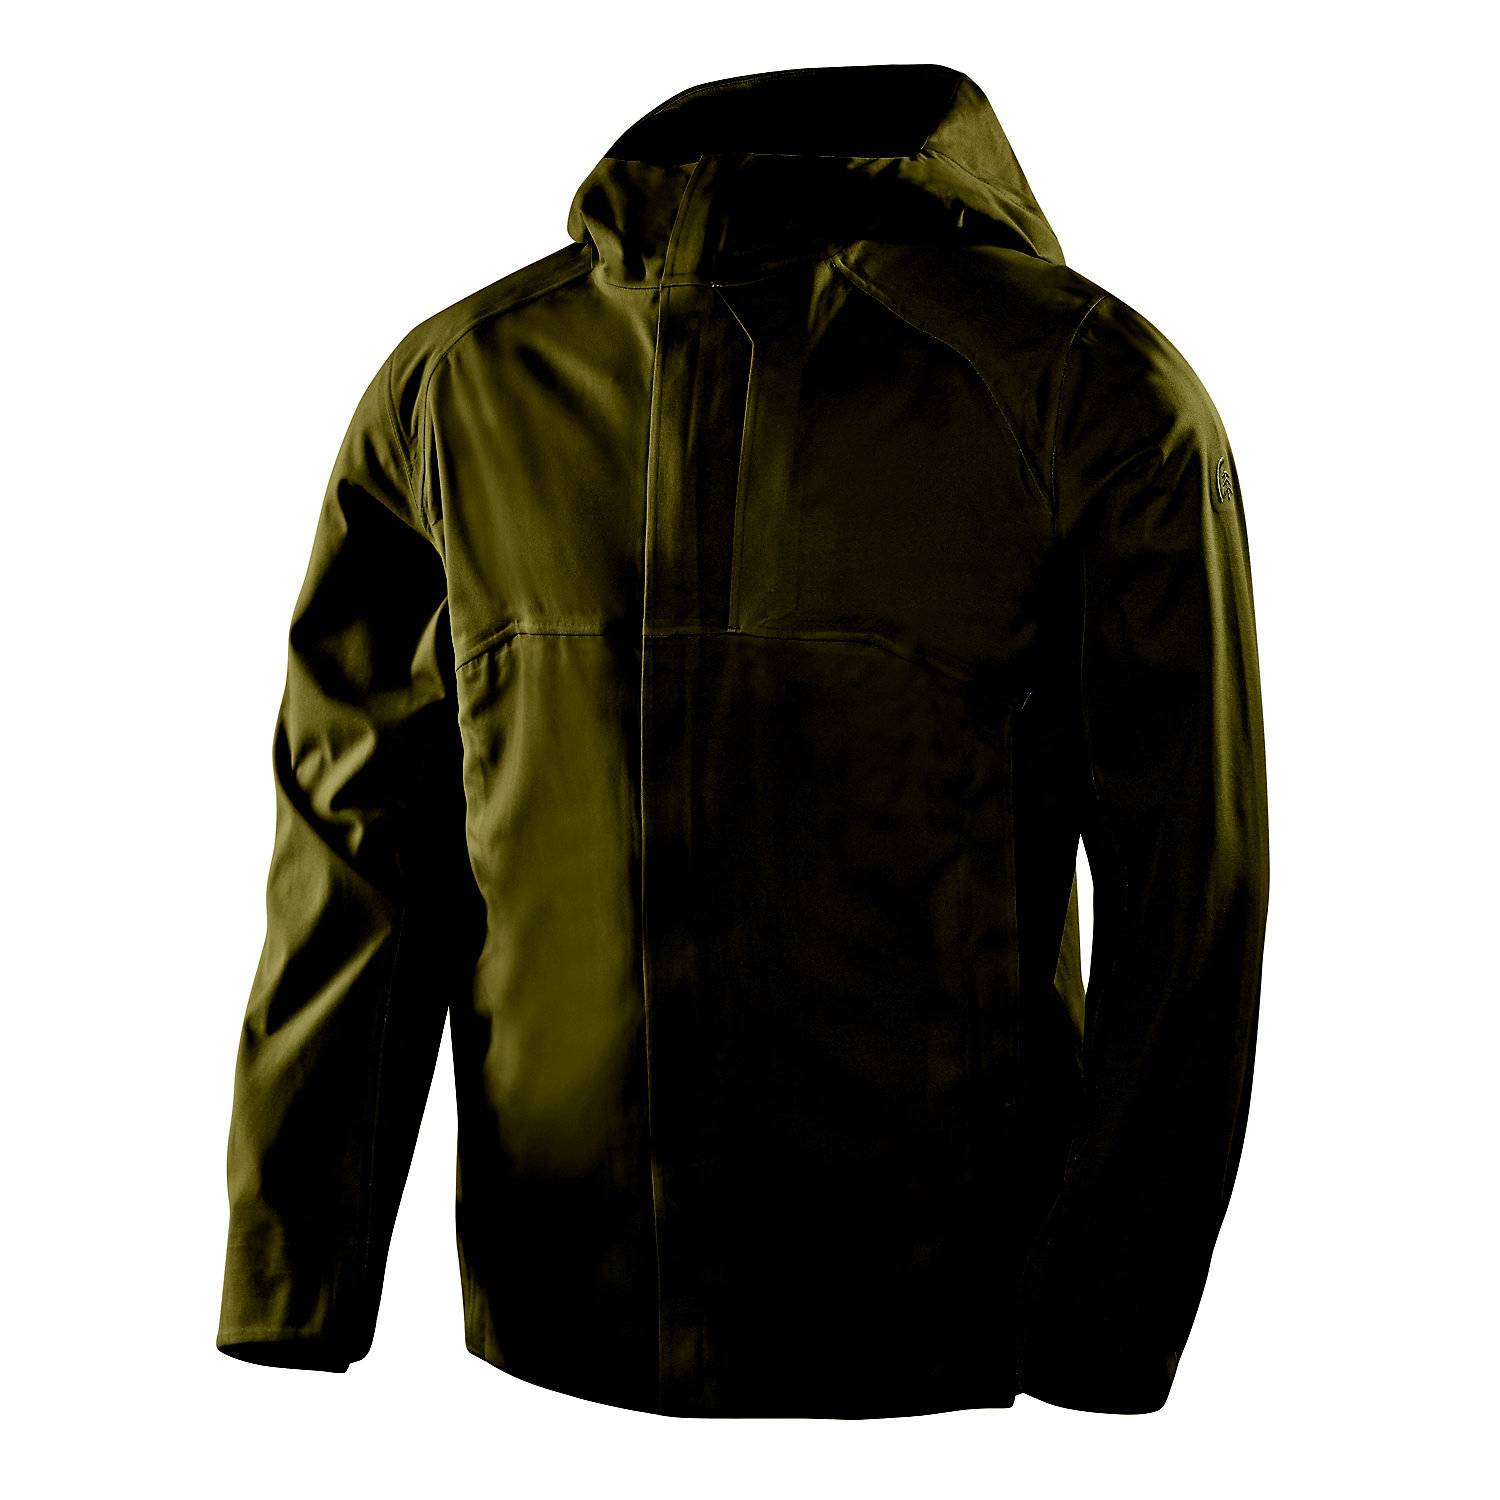 Sierra Design Rain Jacket | Sierra Designs Men S Stretch Rain Jacket Moosejaw